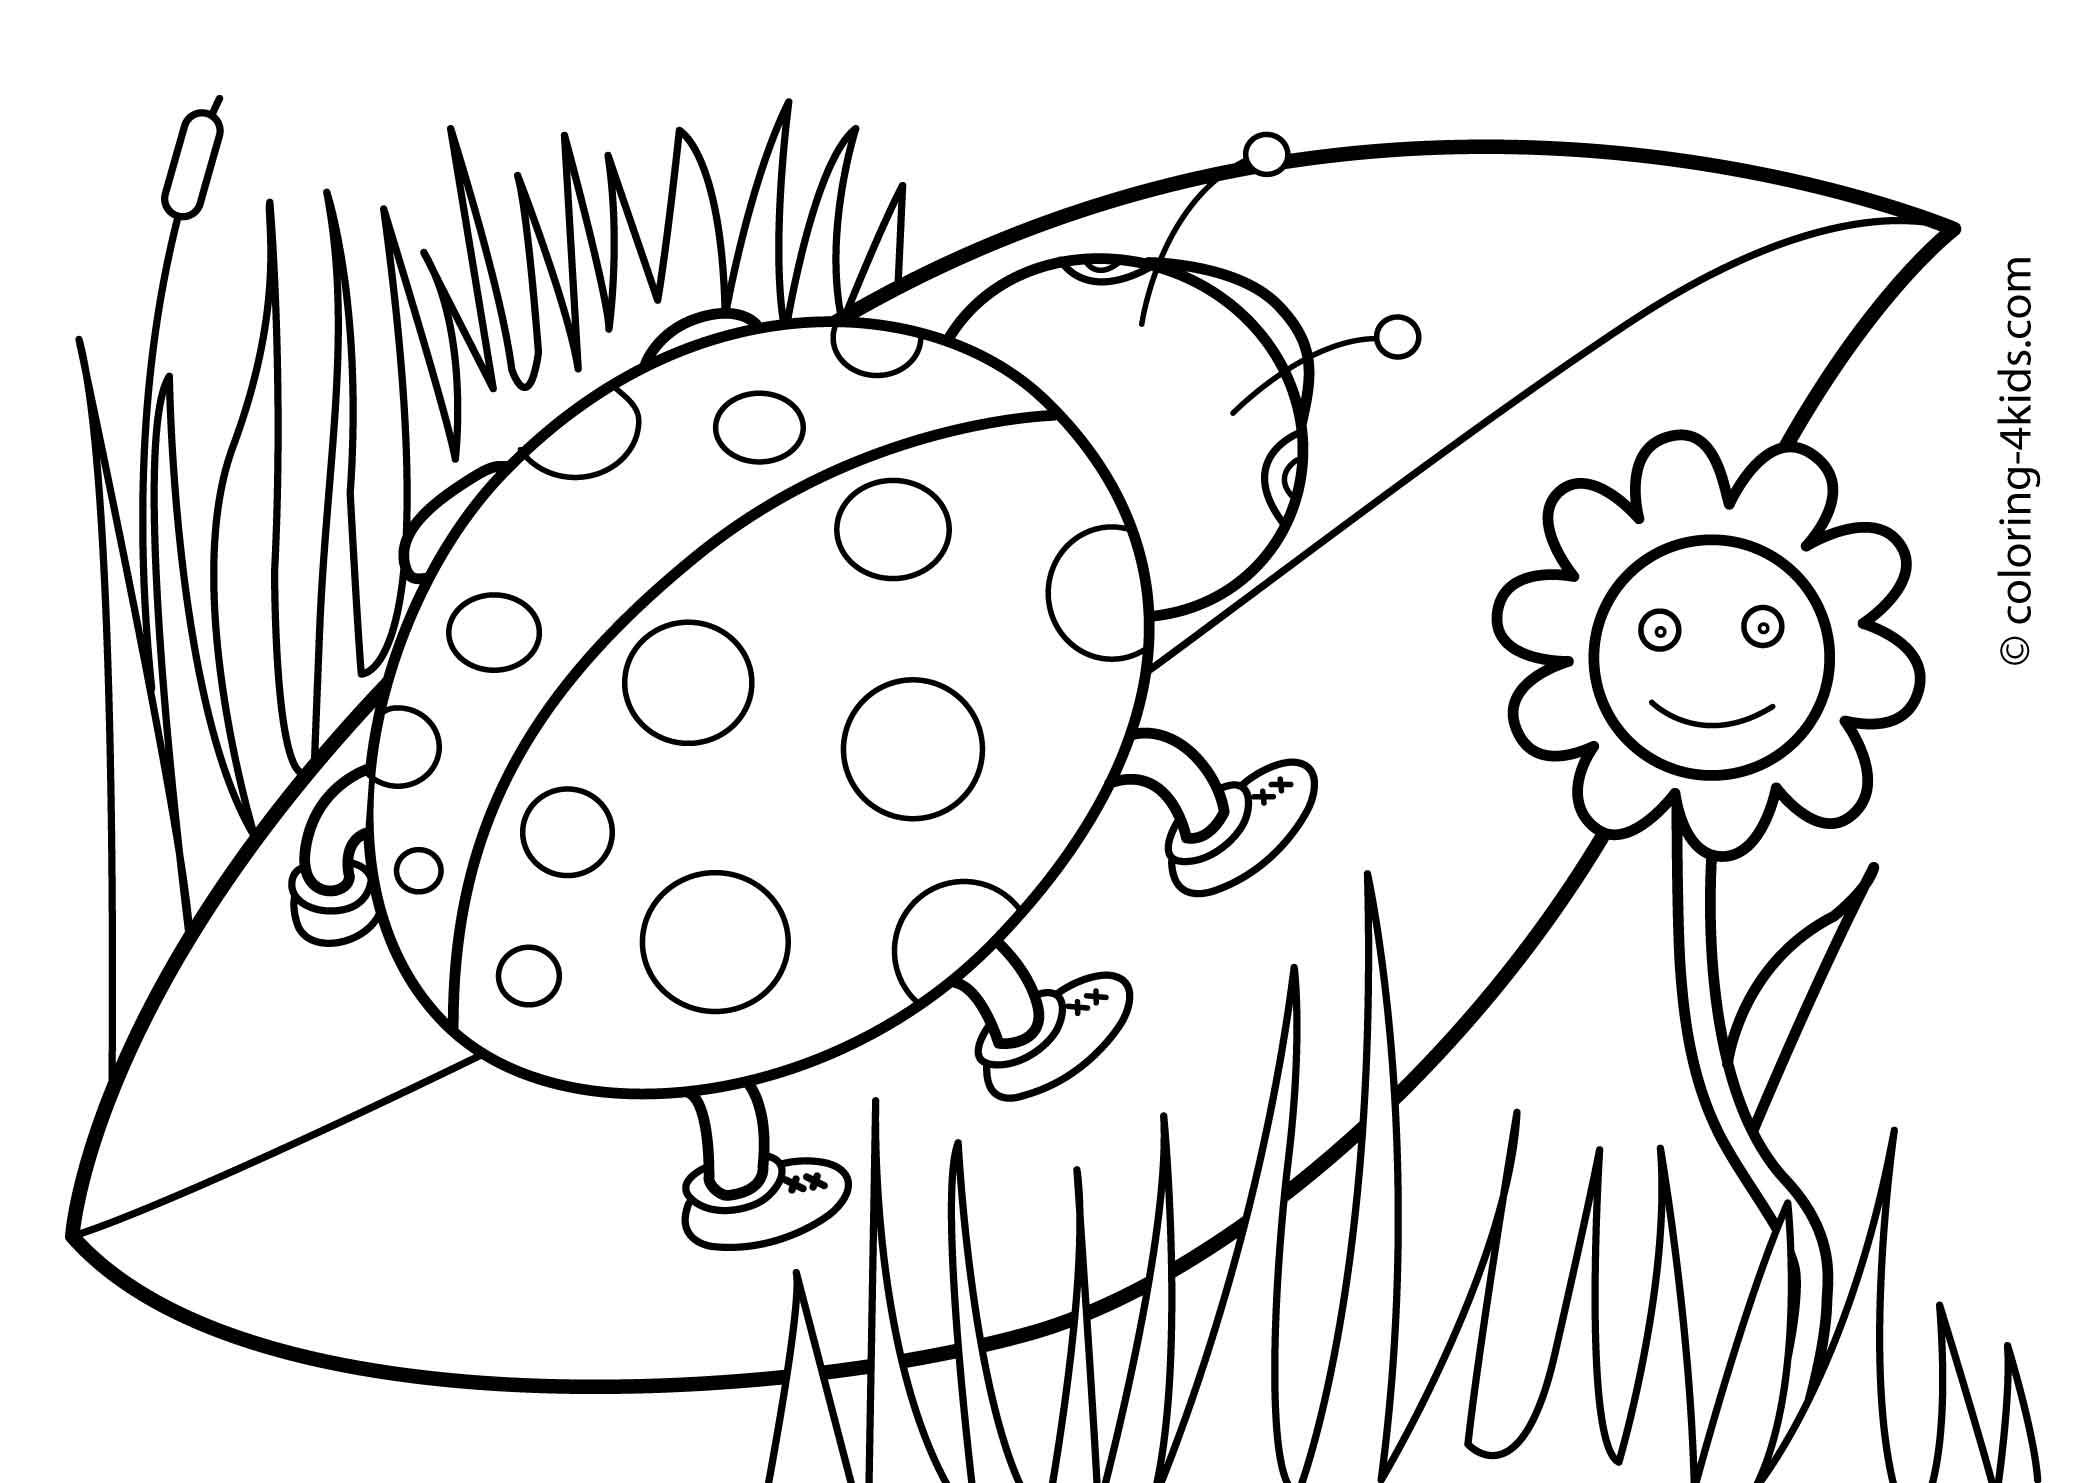 coloring clipart for kids make any picture a coloring page with ipiccy ipiccy coloring kids for clipart